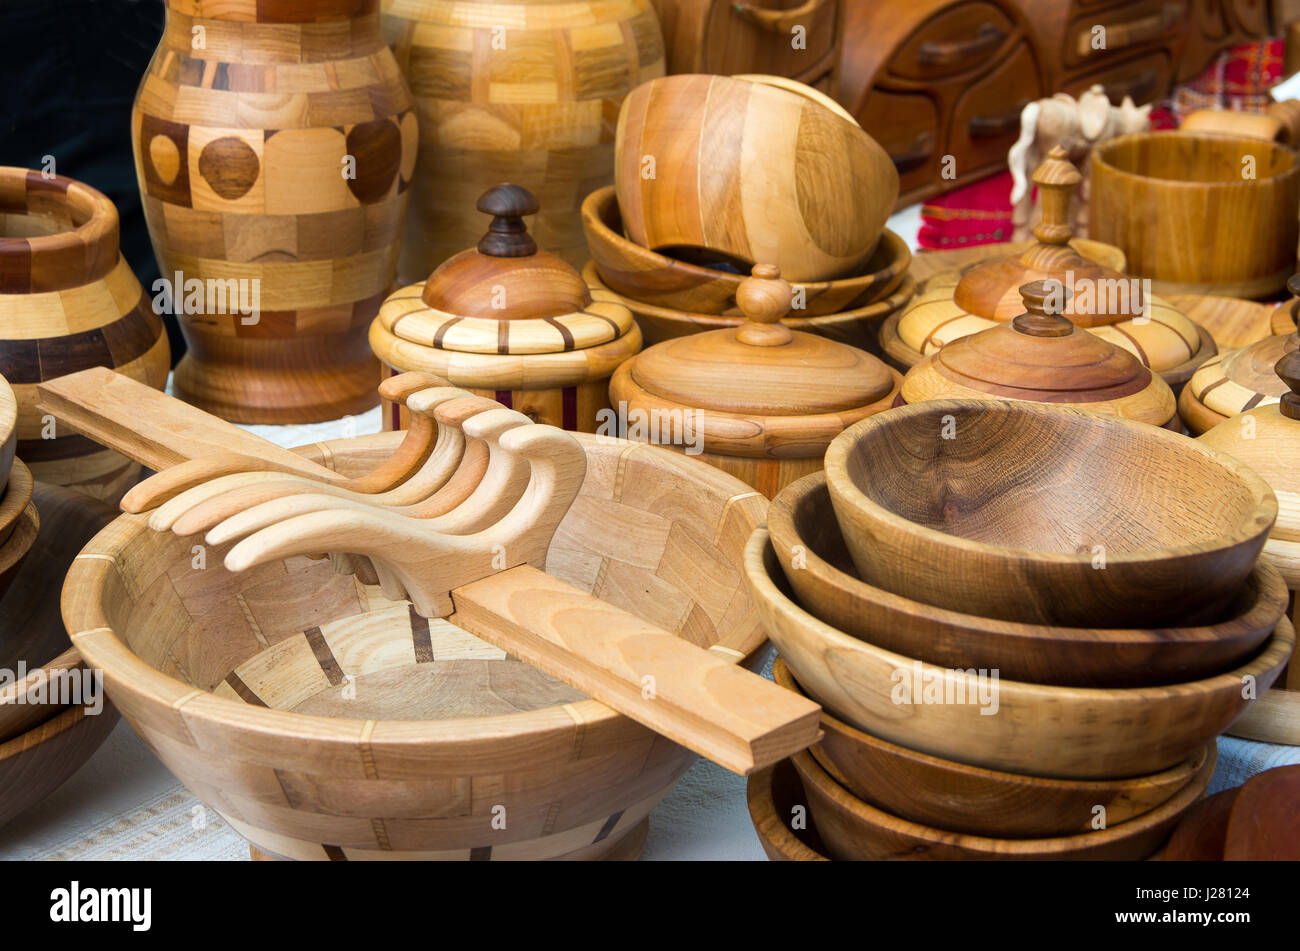 Beautiful wooden household objects. Wooden kitchen utensils - Stock Image